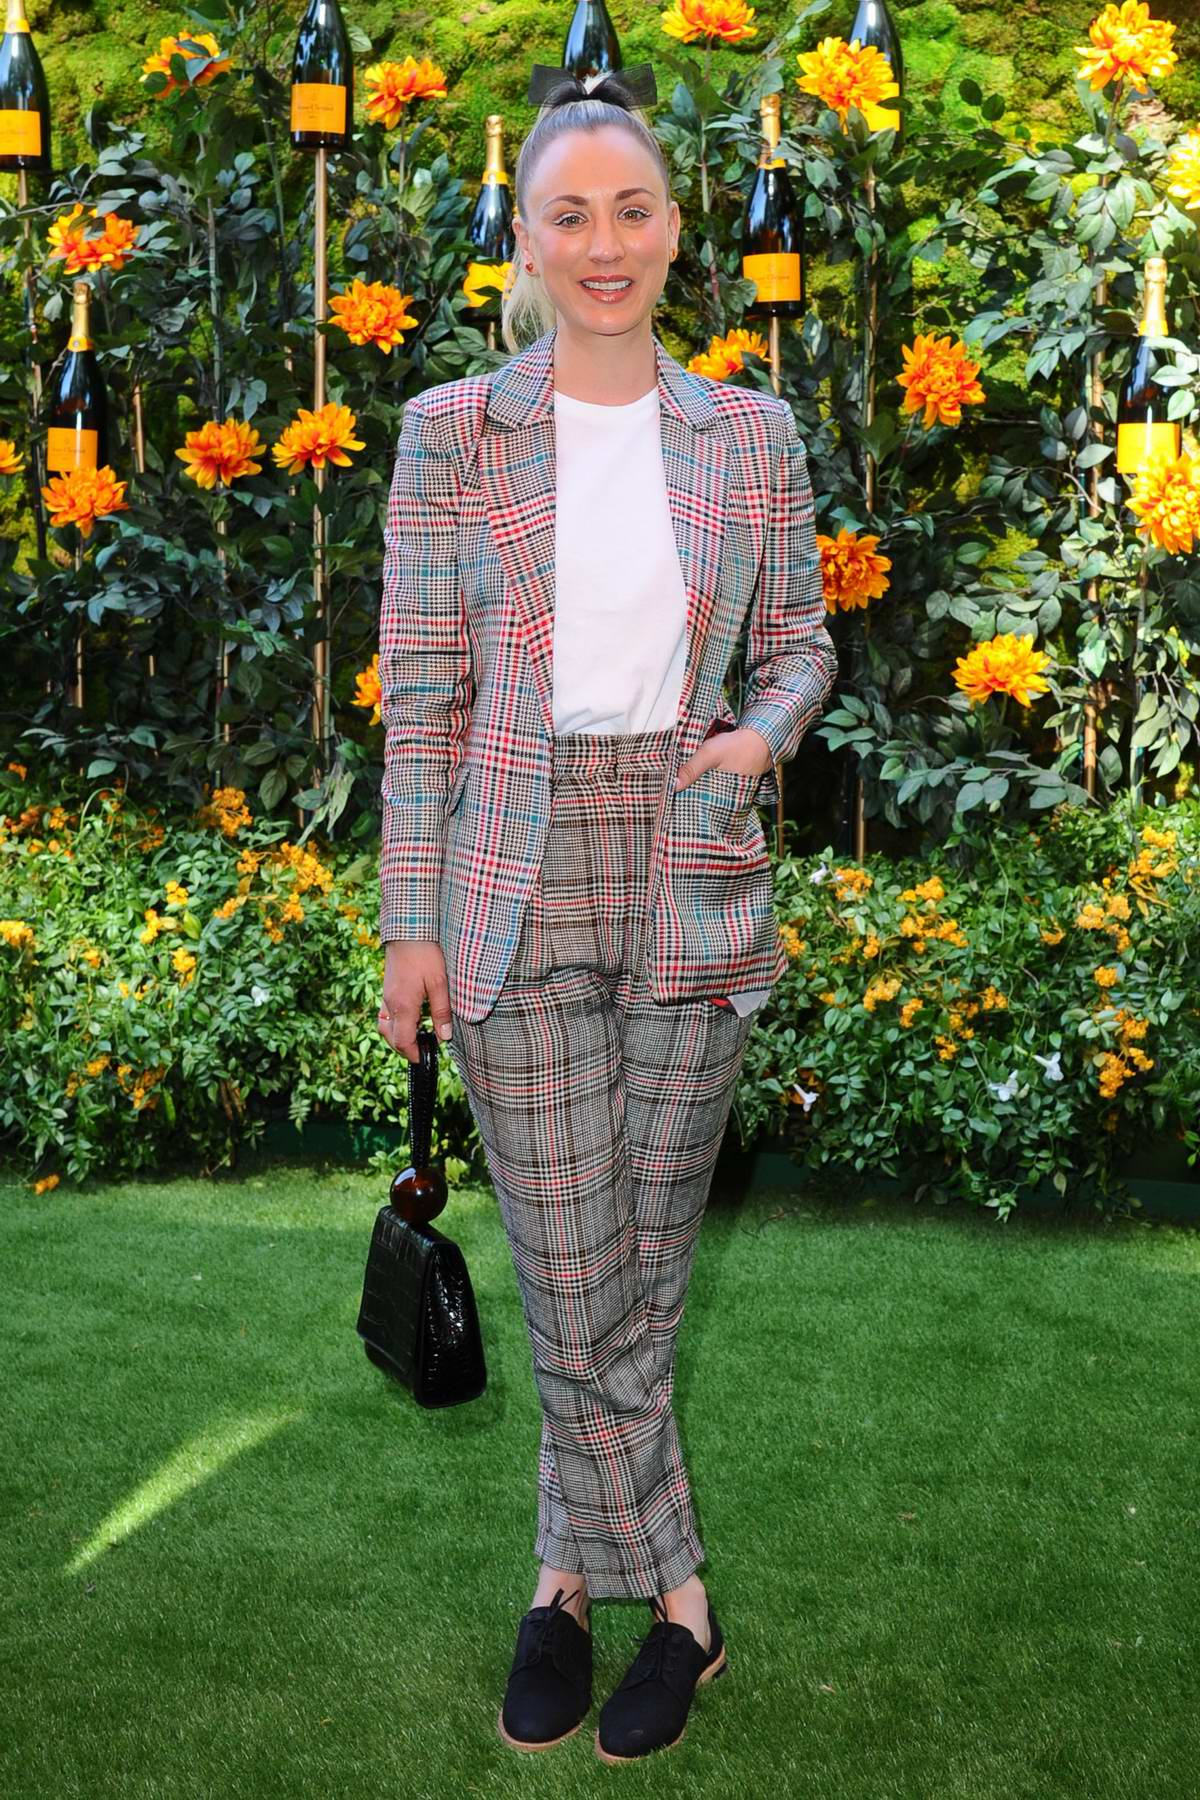 Kaley Cuoco attends the 10th annual Veuve Clicquot Polo Classic at Will Rogers State Park in Los Angeles